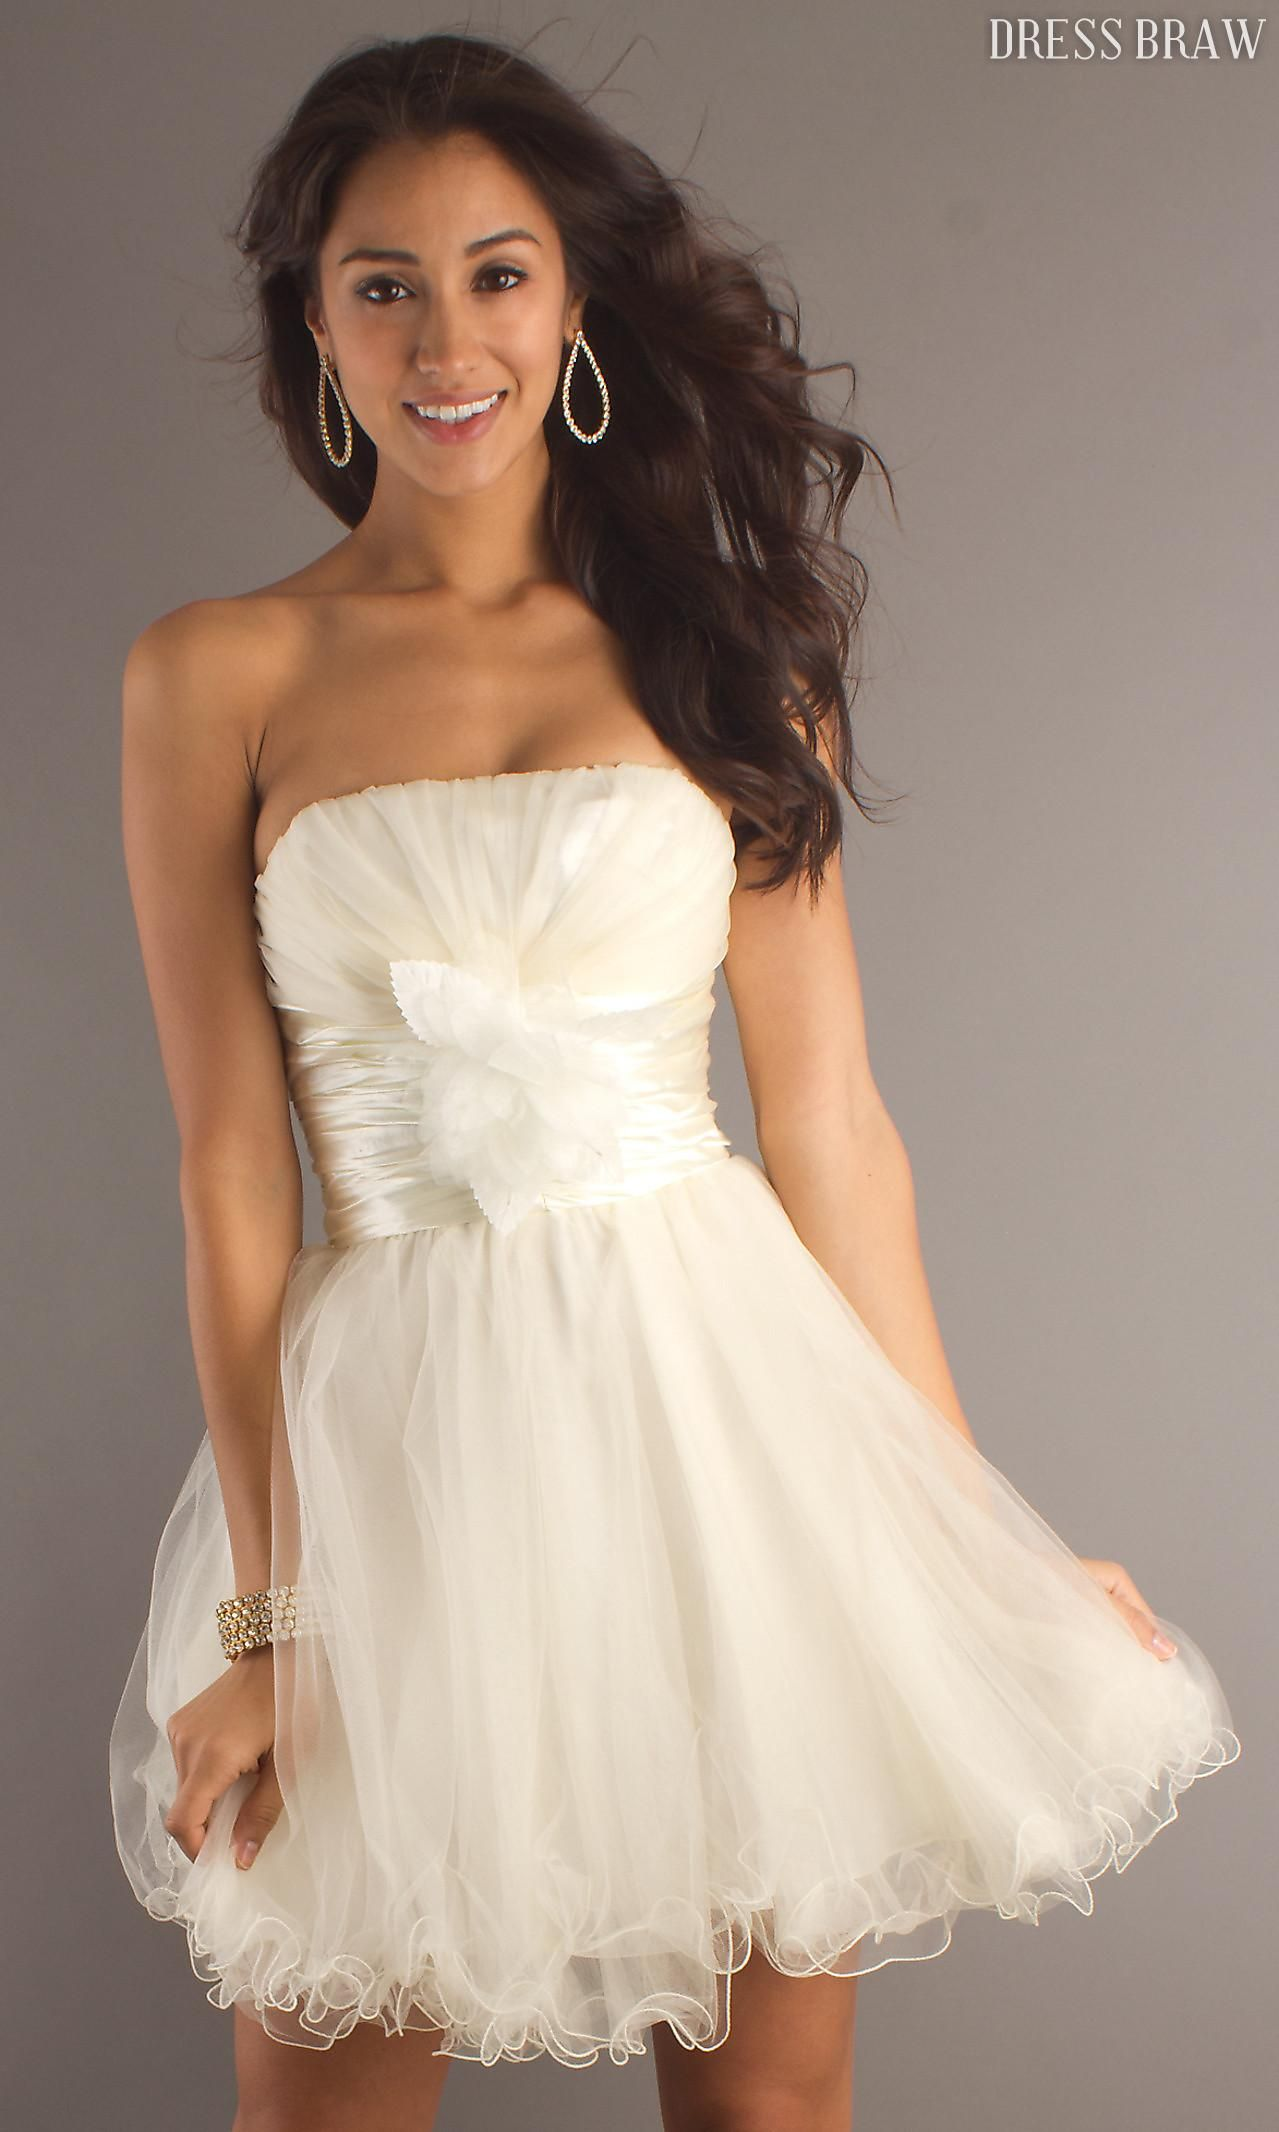 1000  images about Semi formal dresses - nyc on Pinterest - Dance hair